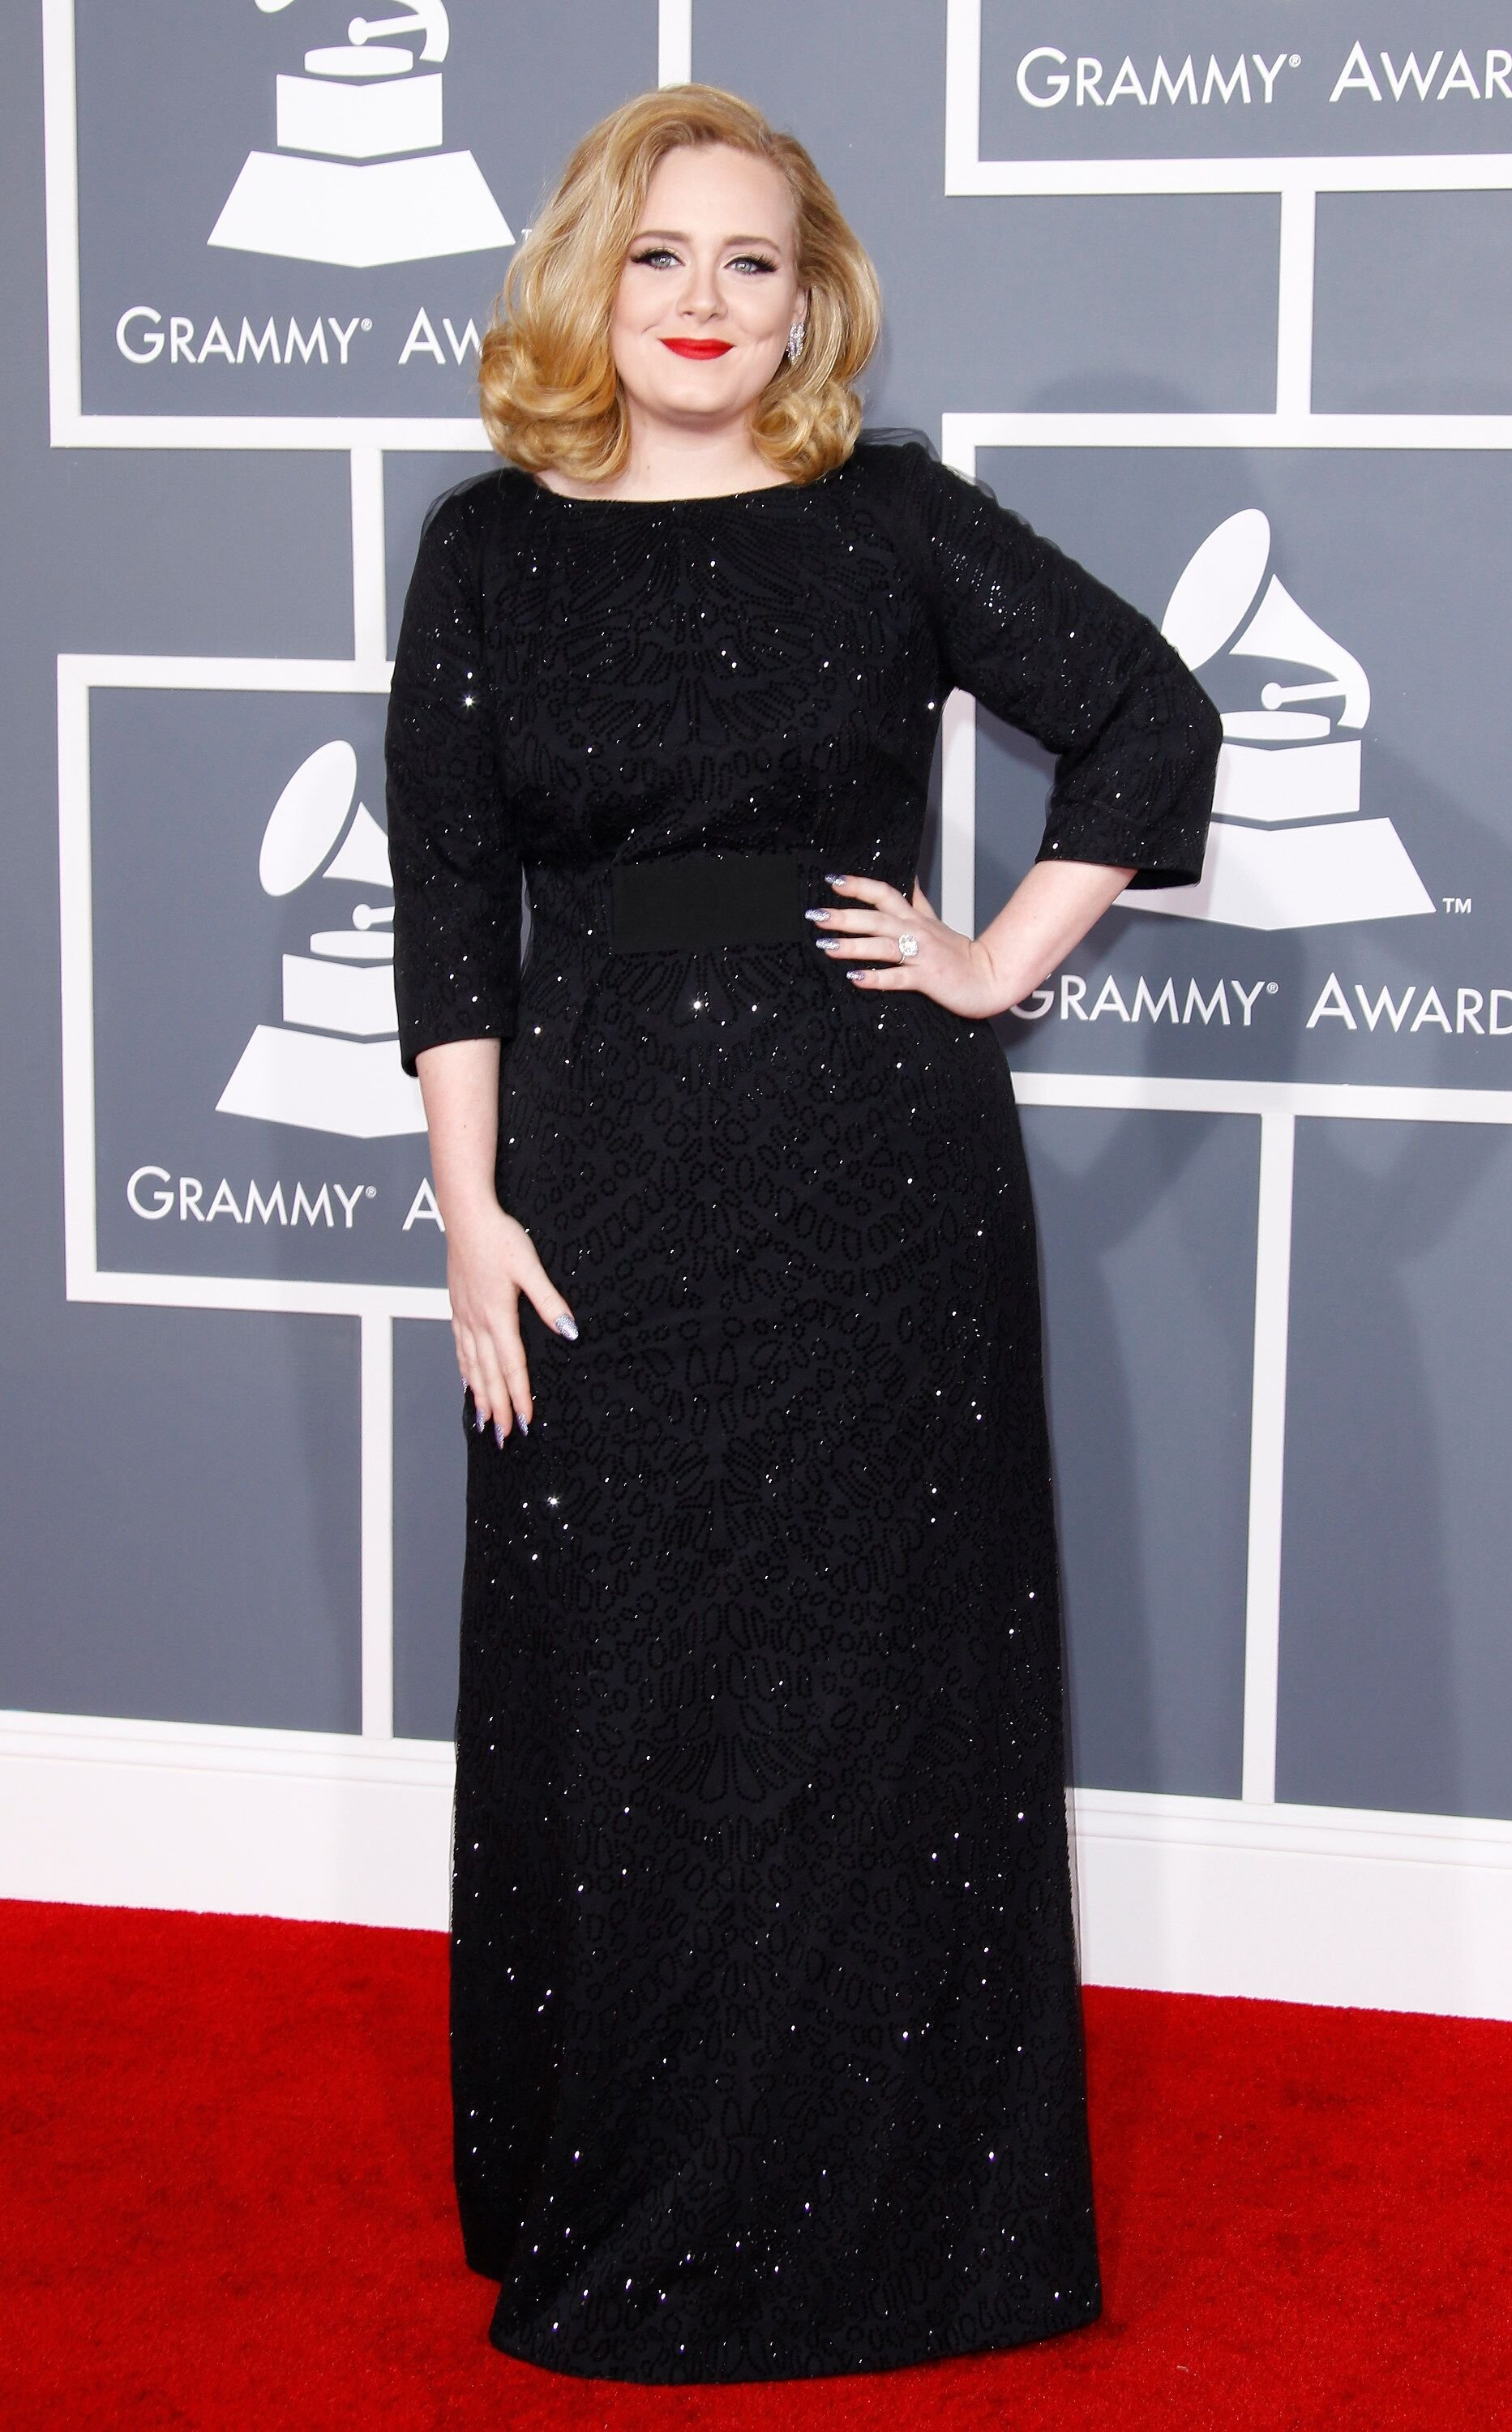 LOS ANGELES, CA - FEBRUARY 12: Singer Adele arrives at the 54th Annual GRAMMY Awards held at the Staples Center on February 12, 2012 in Los Angeles, California. (Photo by Dan MacMedan/WireImage)